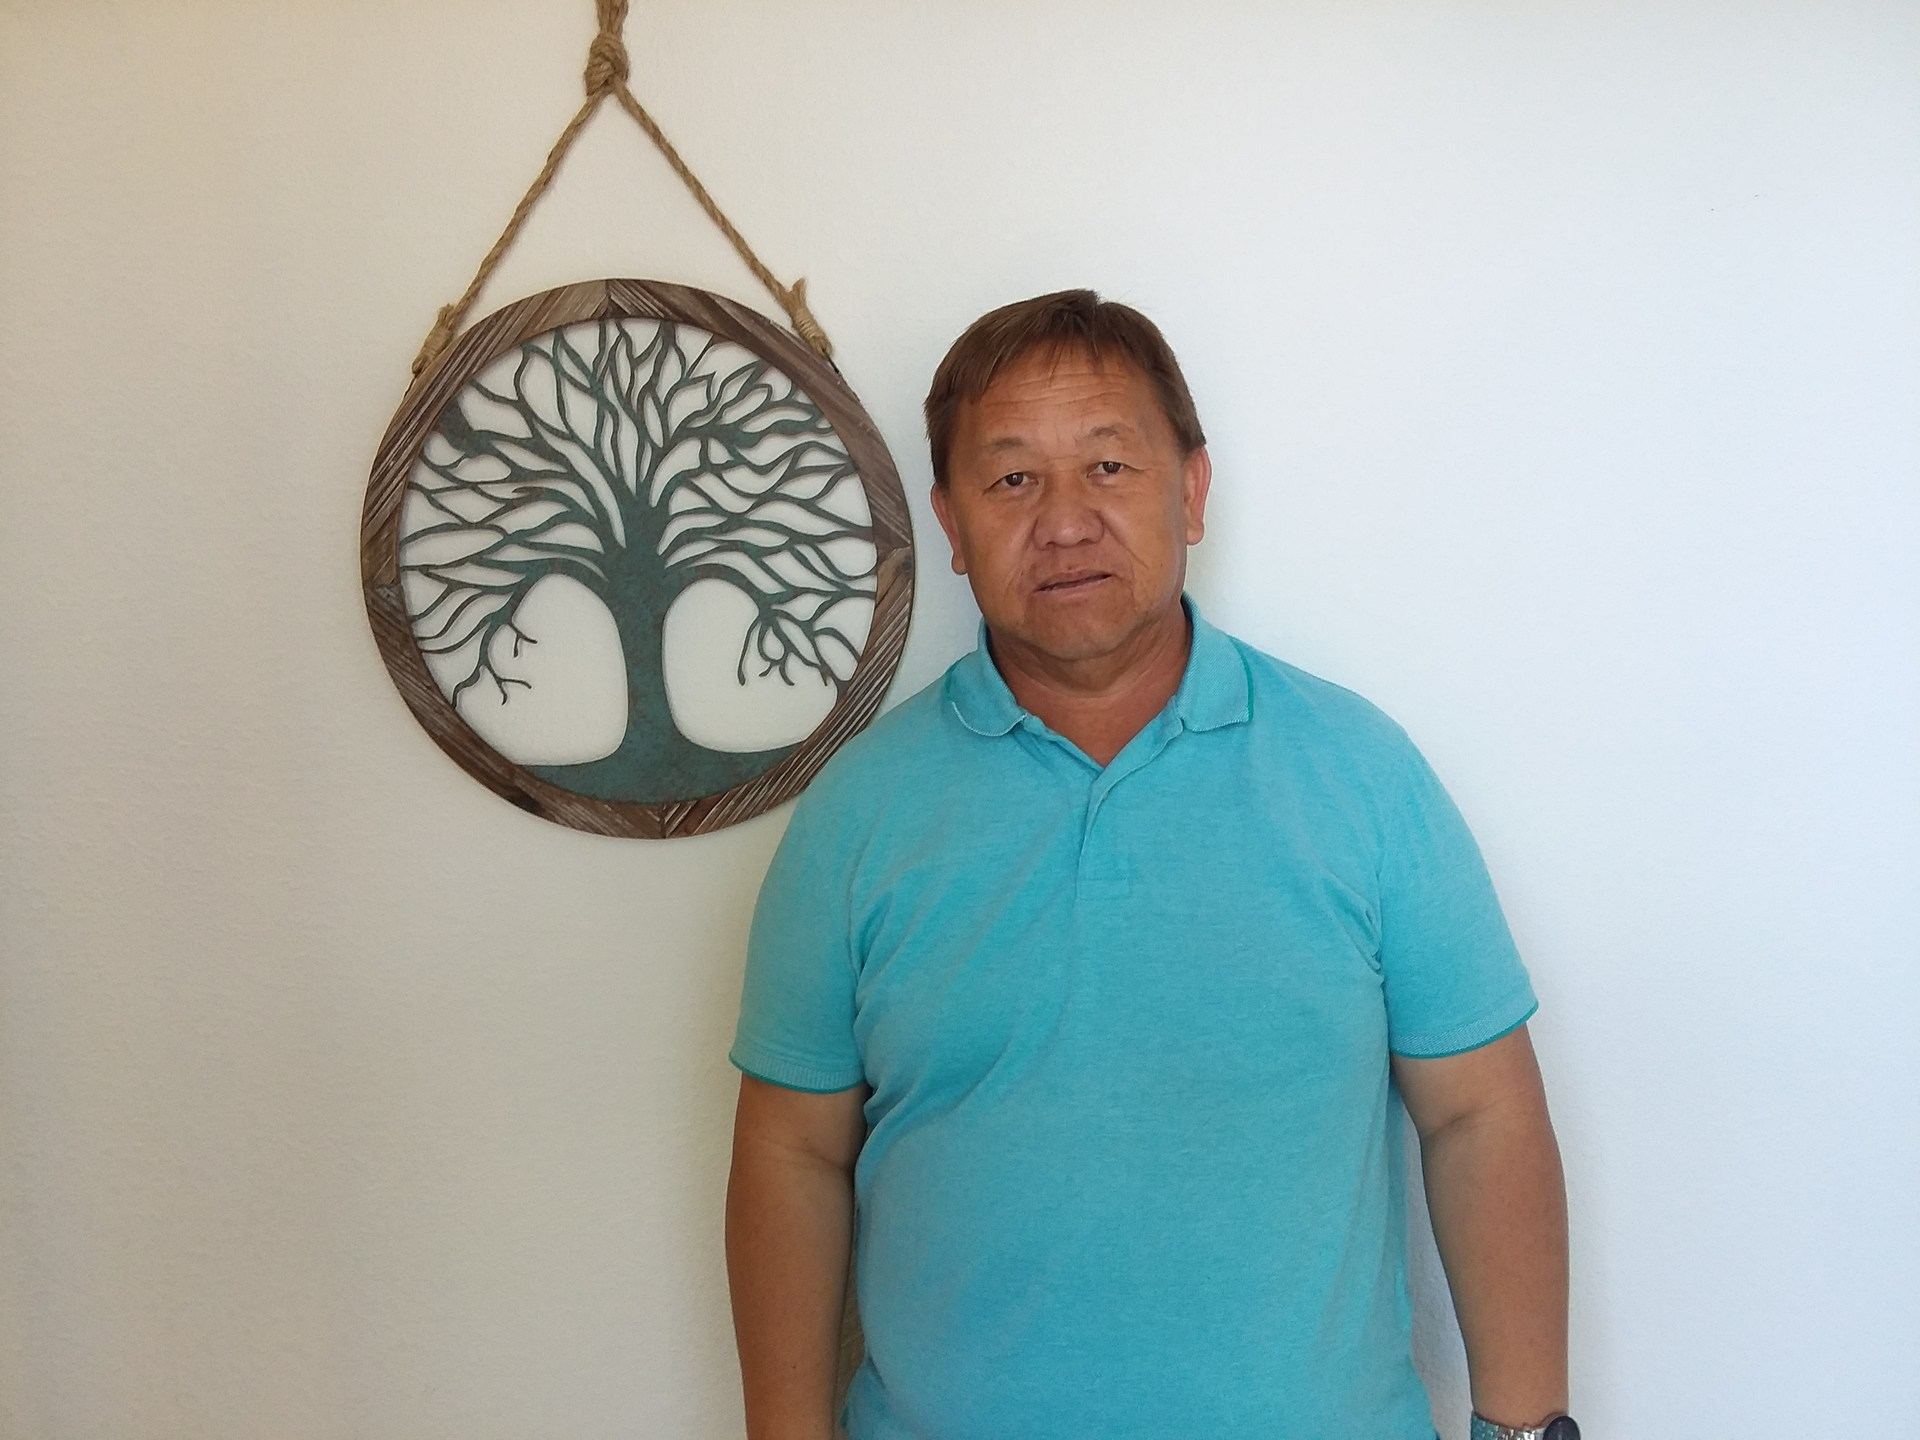 Chue Vang -Hmong Community Outreach Assistant